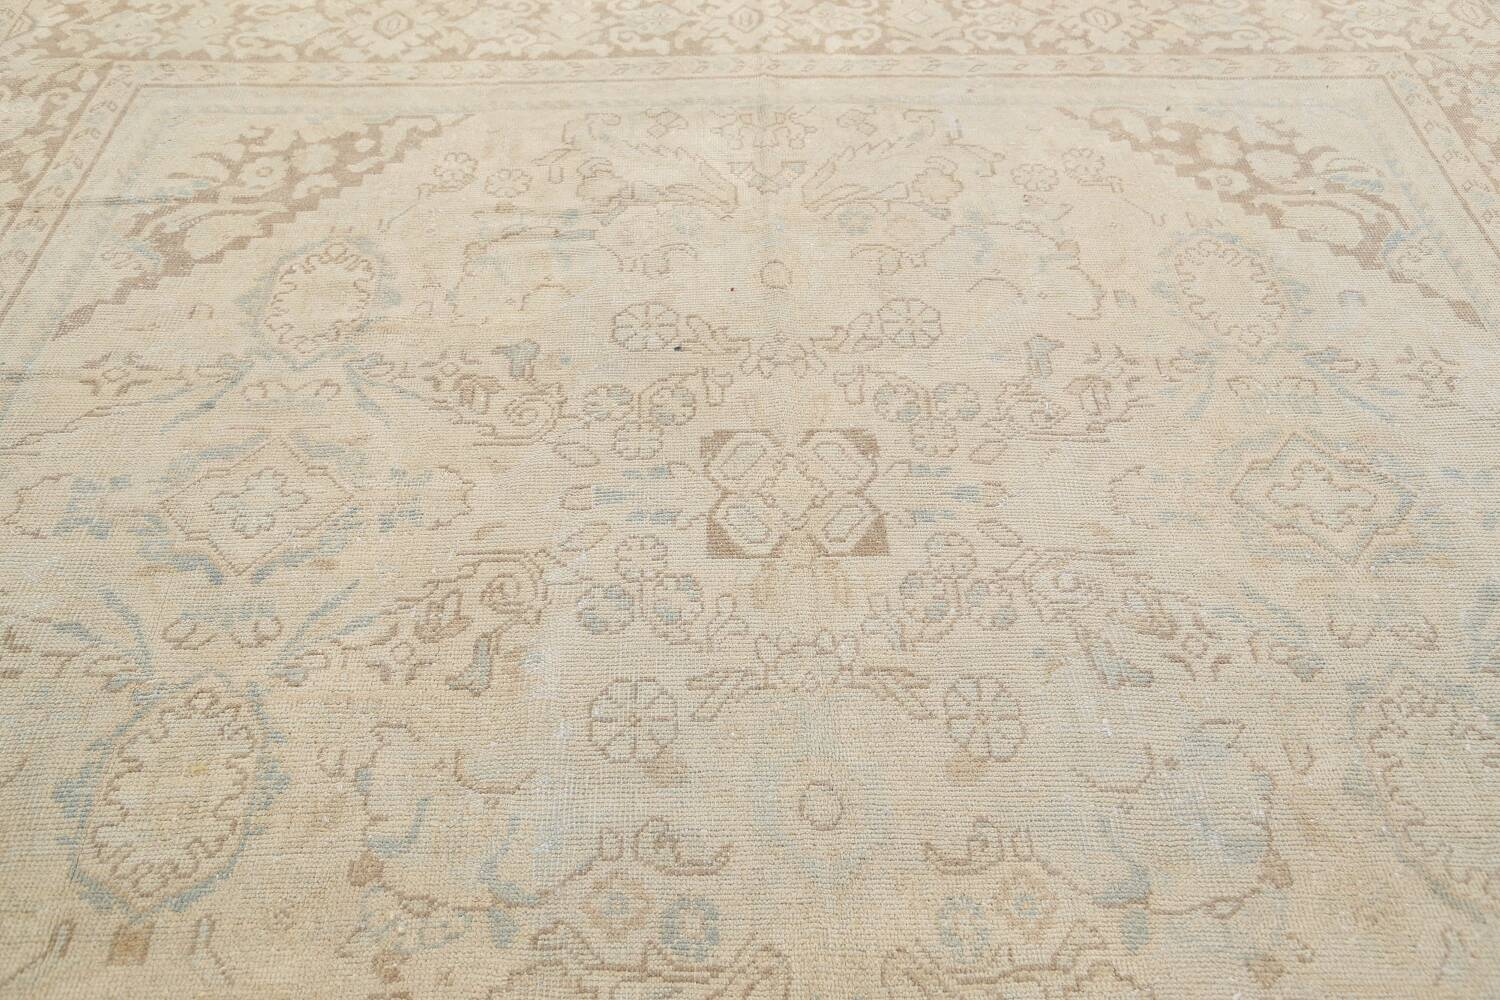 Antique Floral Mahal Persian Area Rug 9x12 image 12